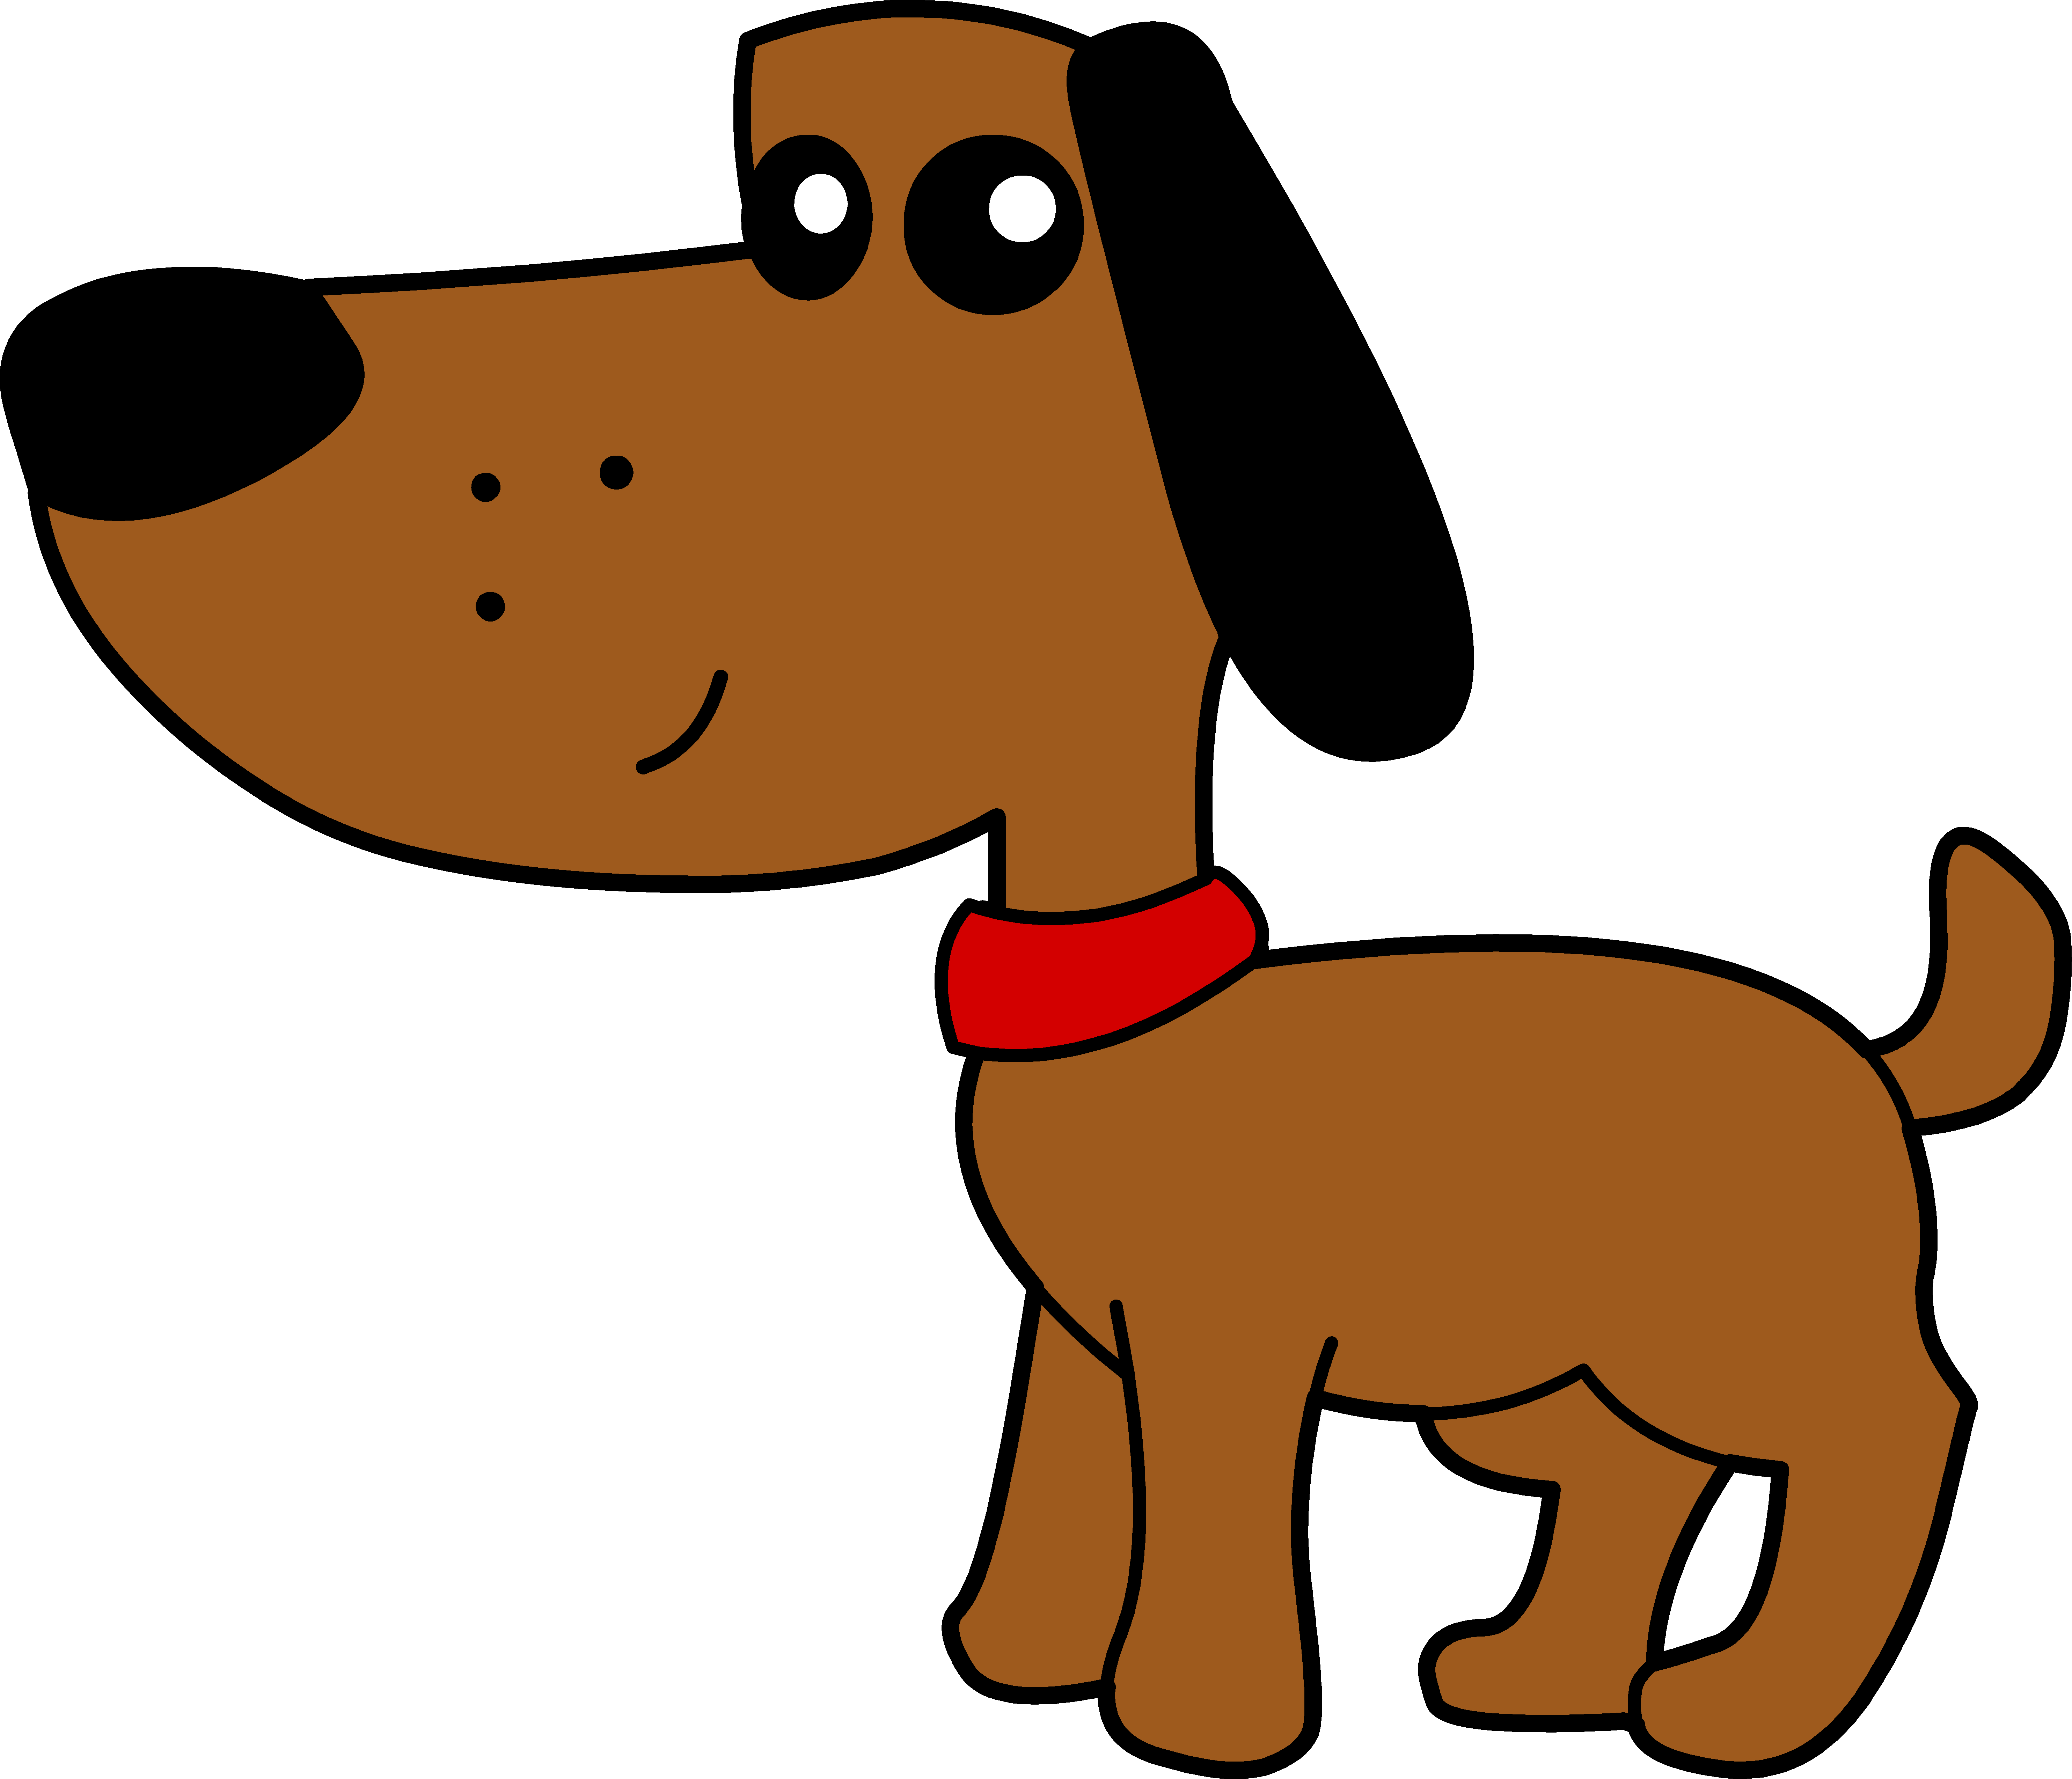 Dog poop clipart free. Small brown clipartfest full